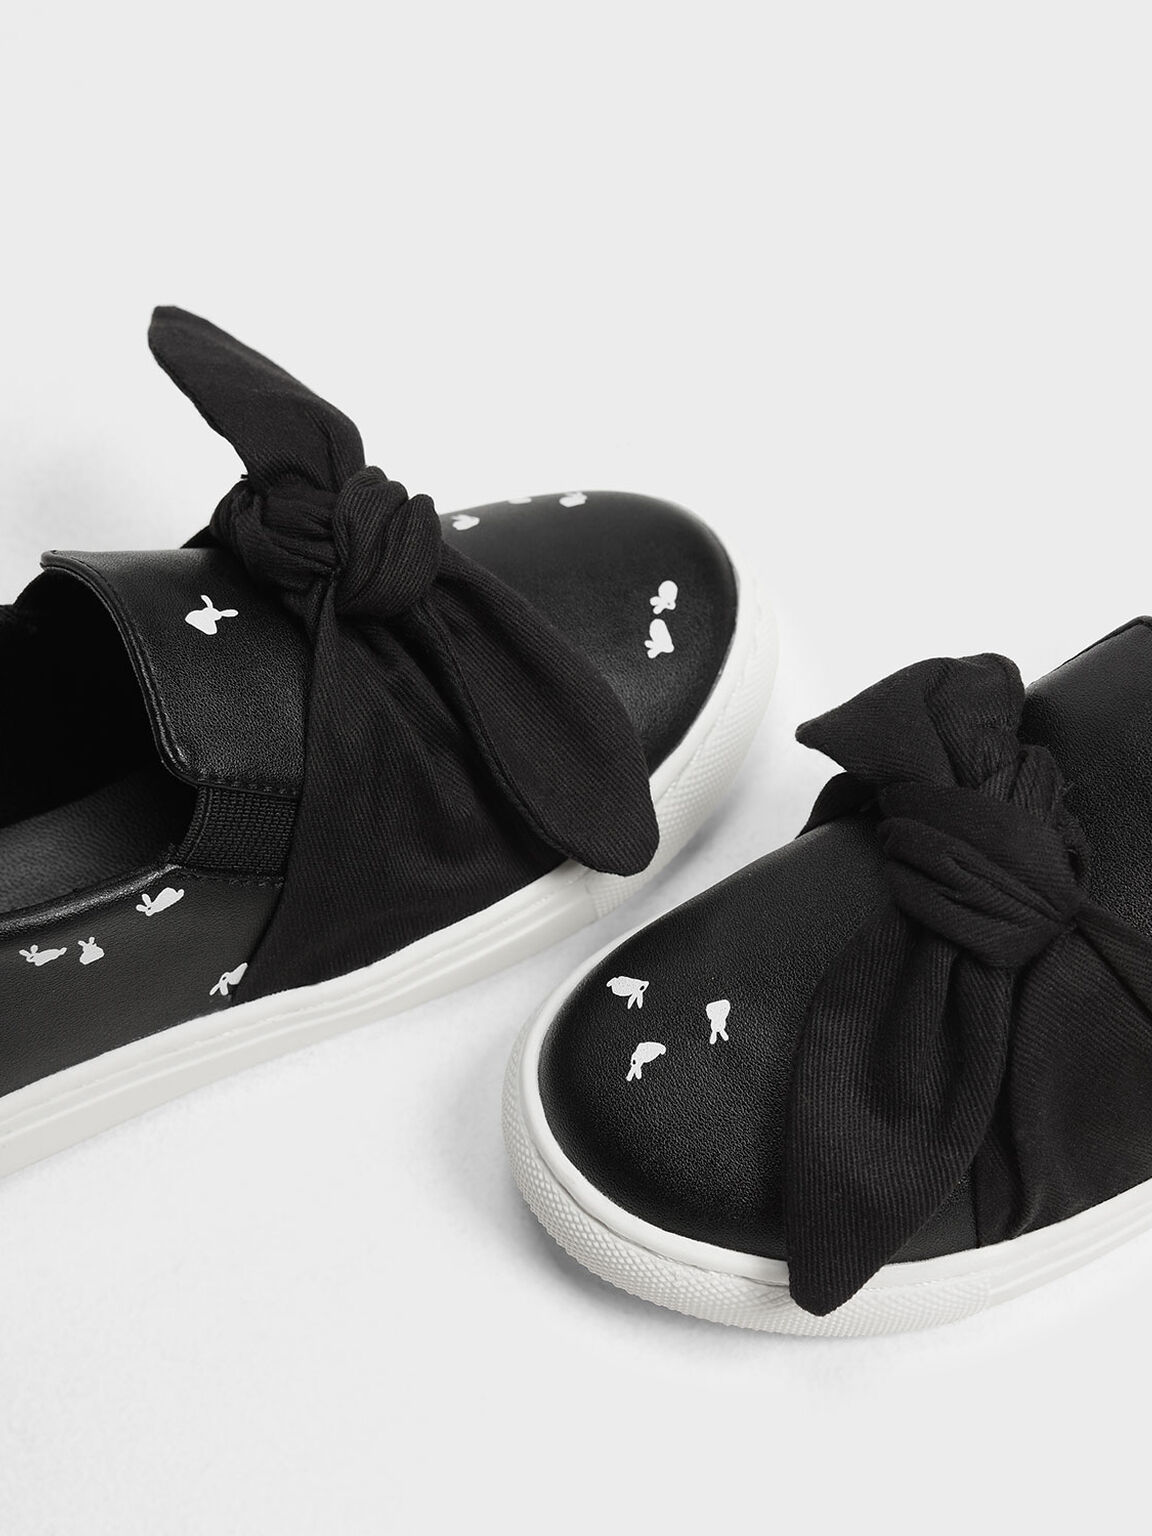 Kids' Bow Slip-On Sneakers, Black, hi-res